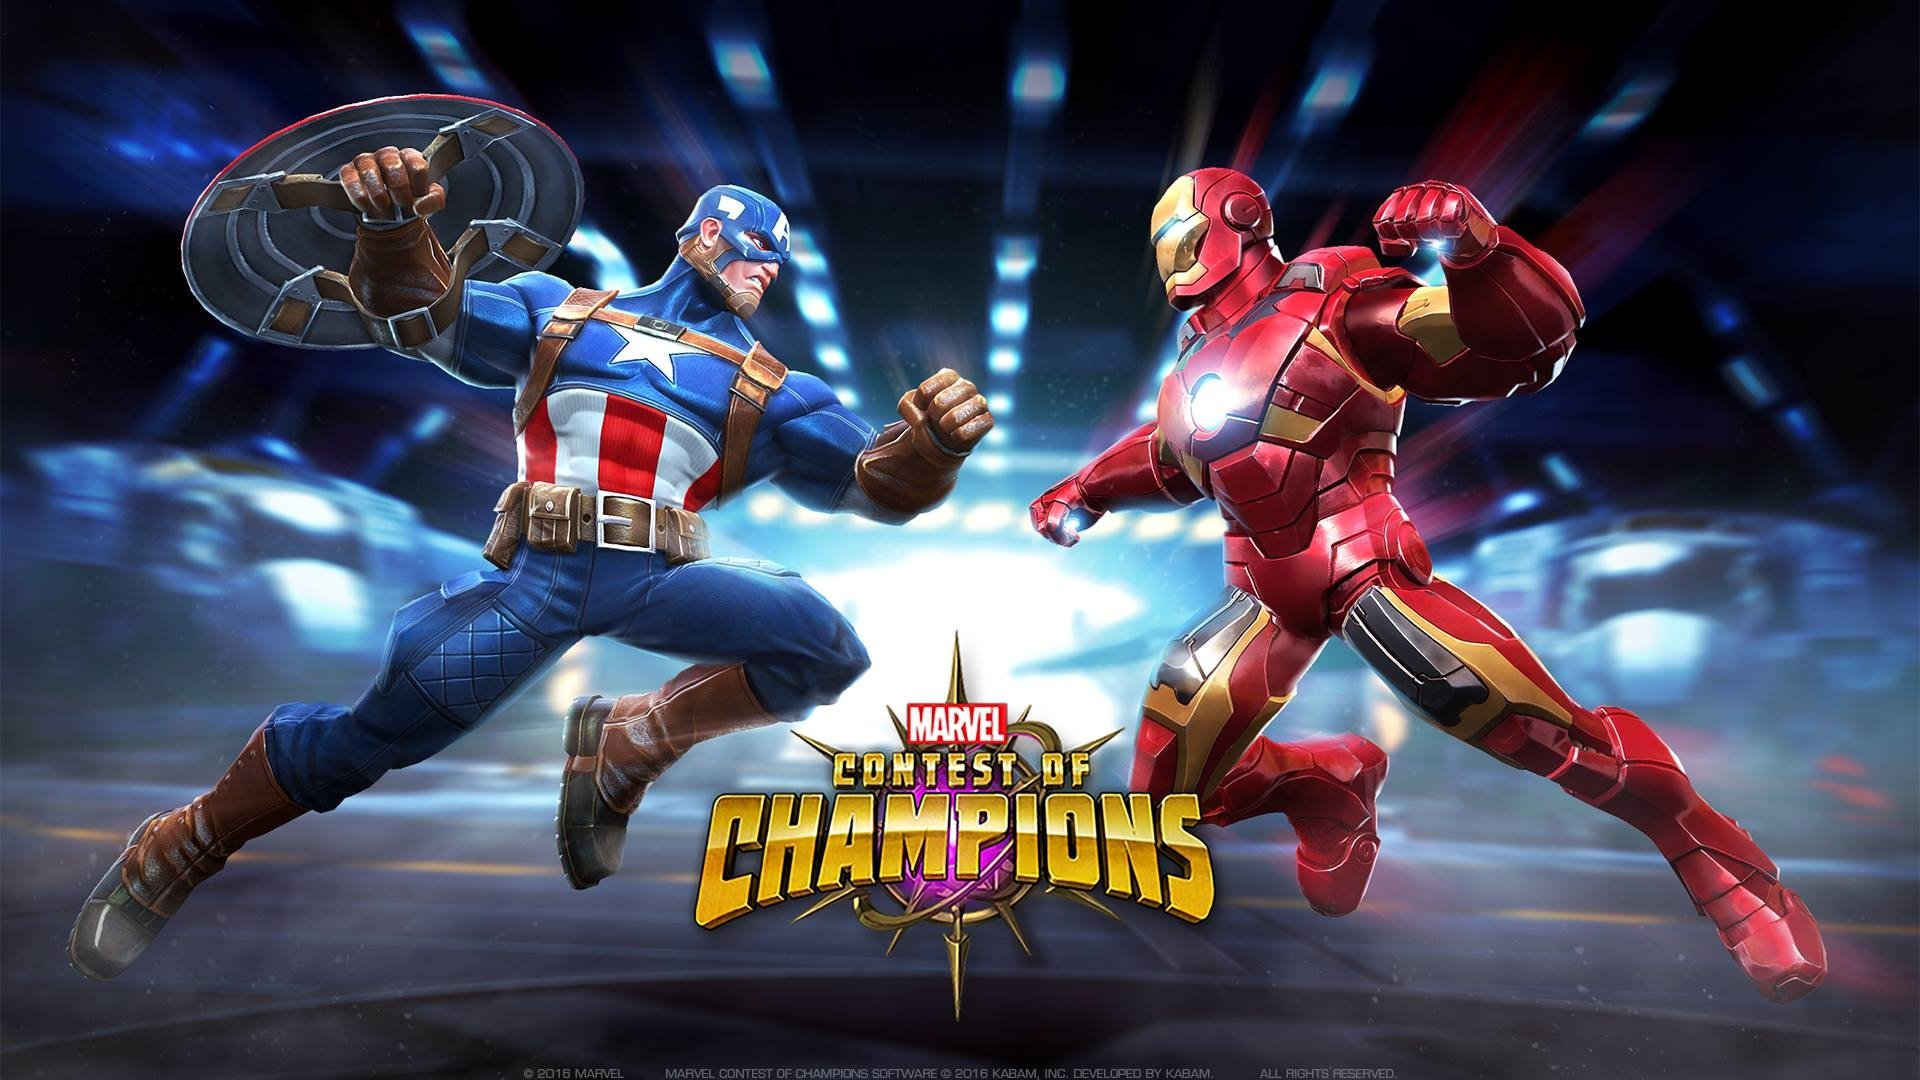 Video Game - MARVEL Contest of Champions  Captain America Iron Man Wallpaper